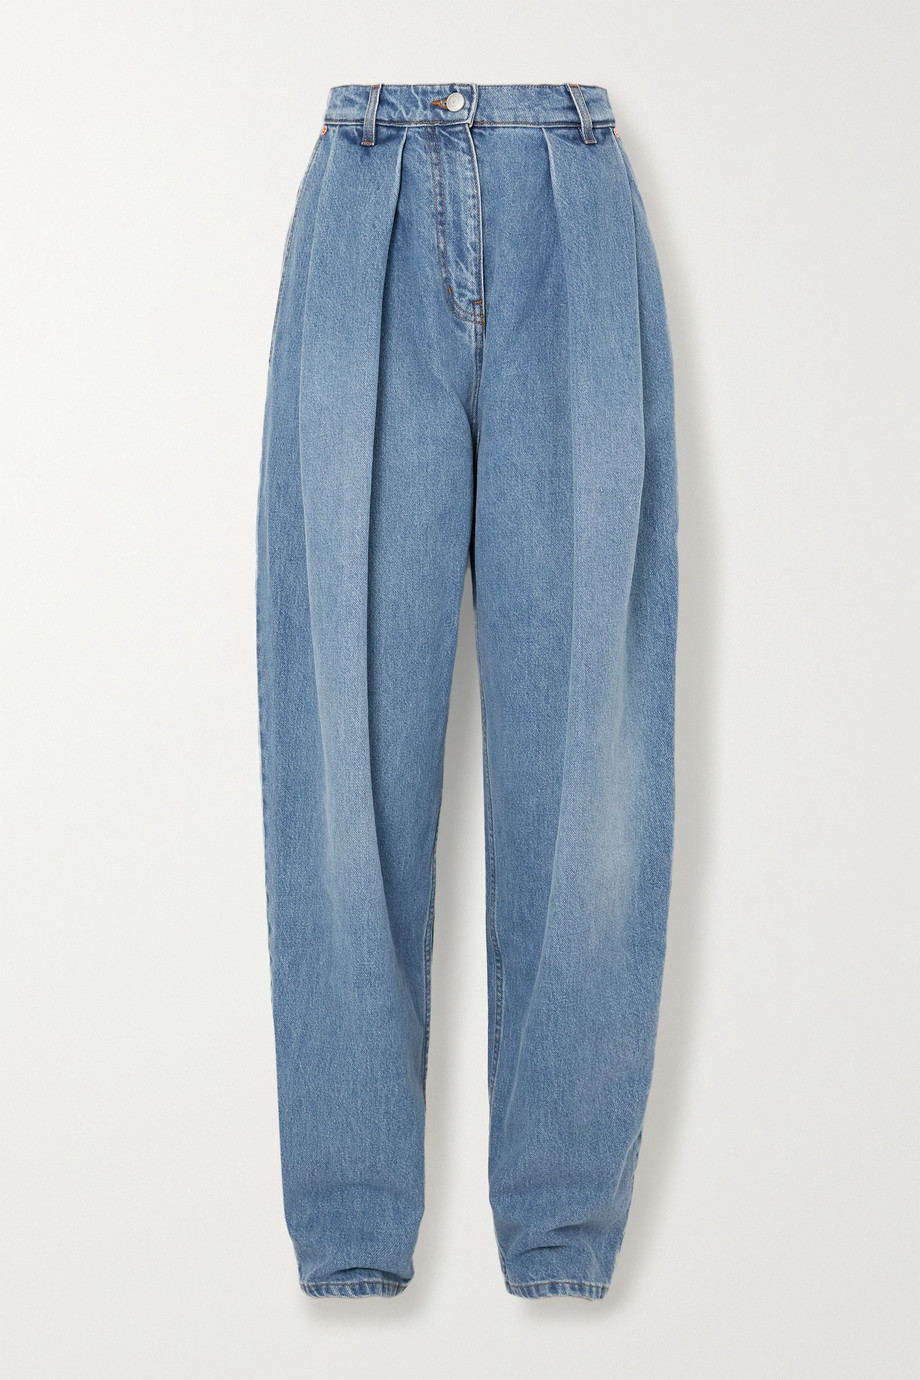 MAGDA BUTRYM Pleated high-rise tapered jeans